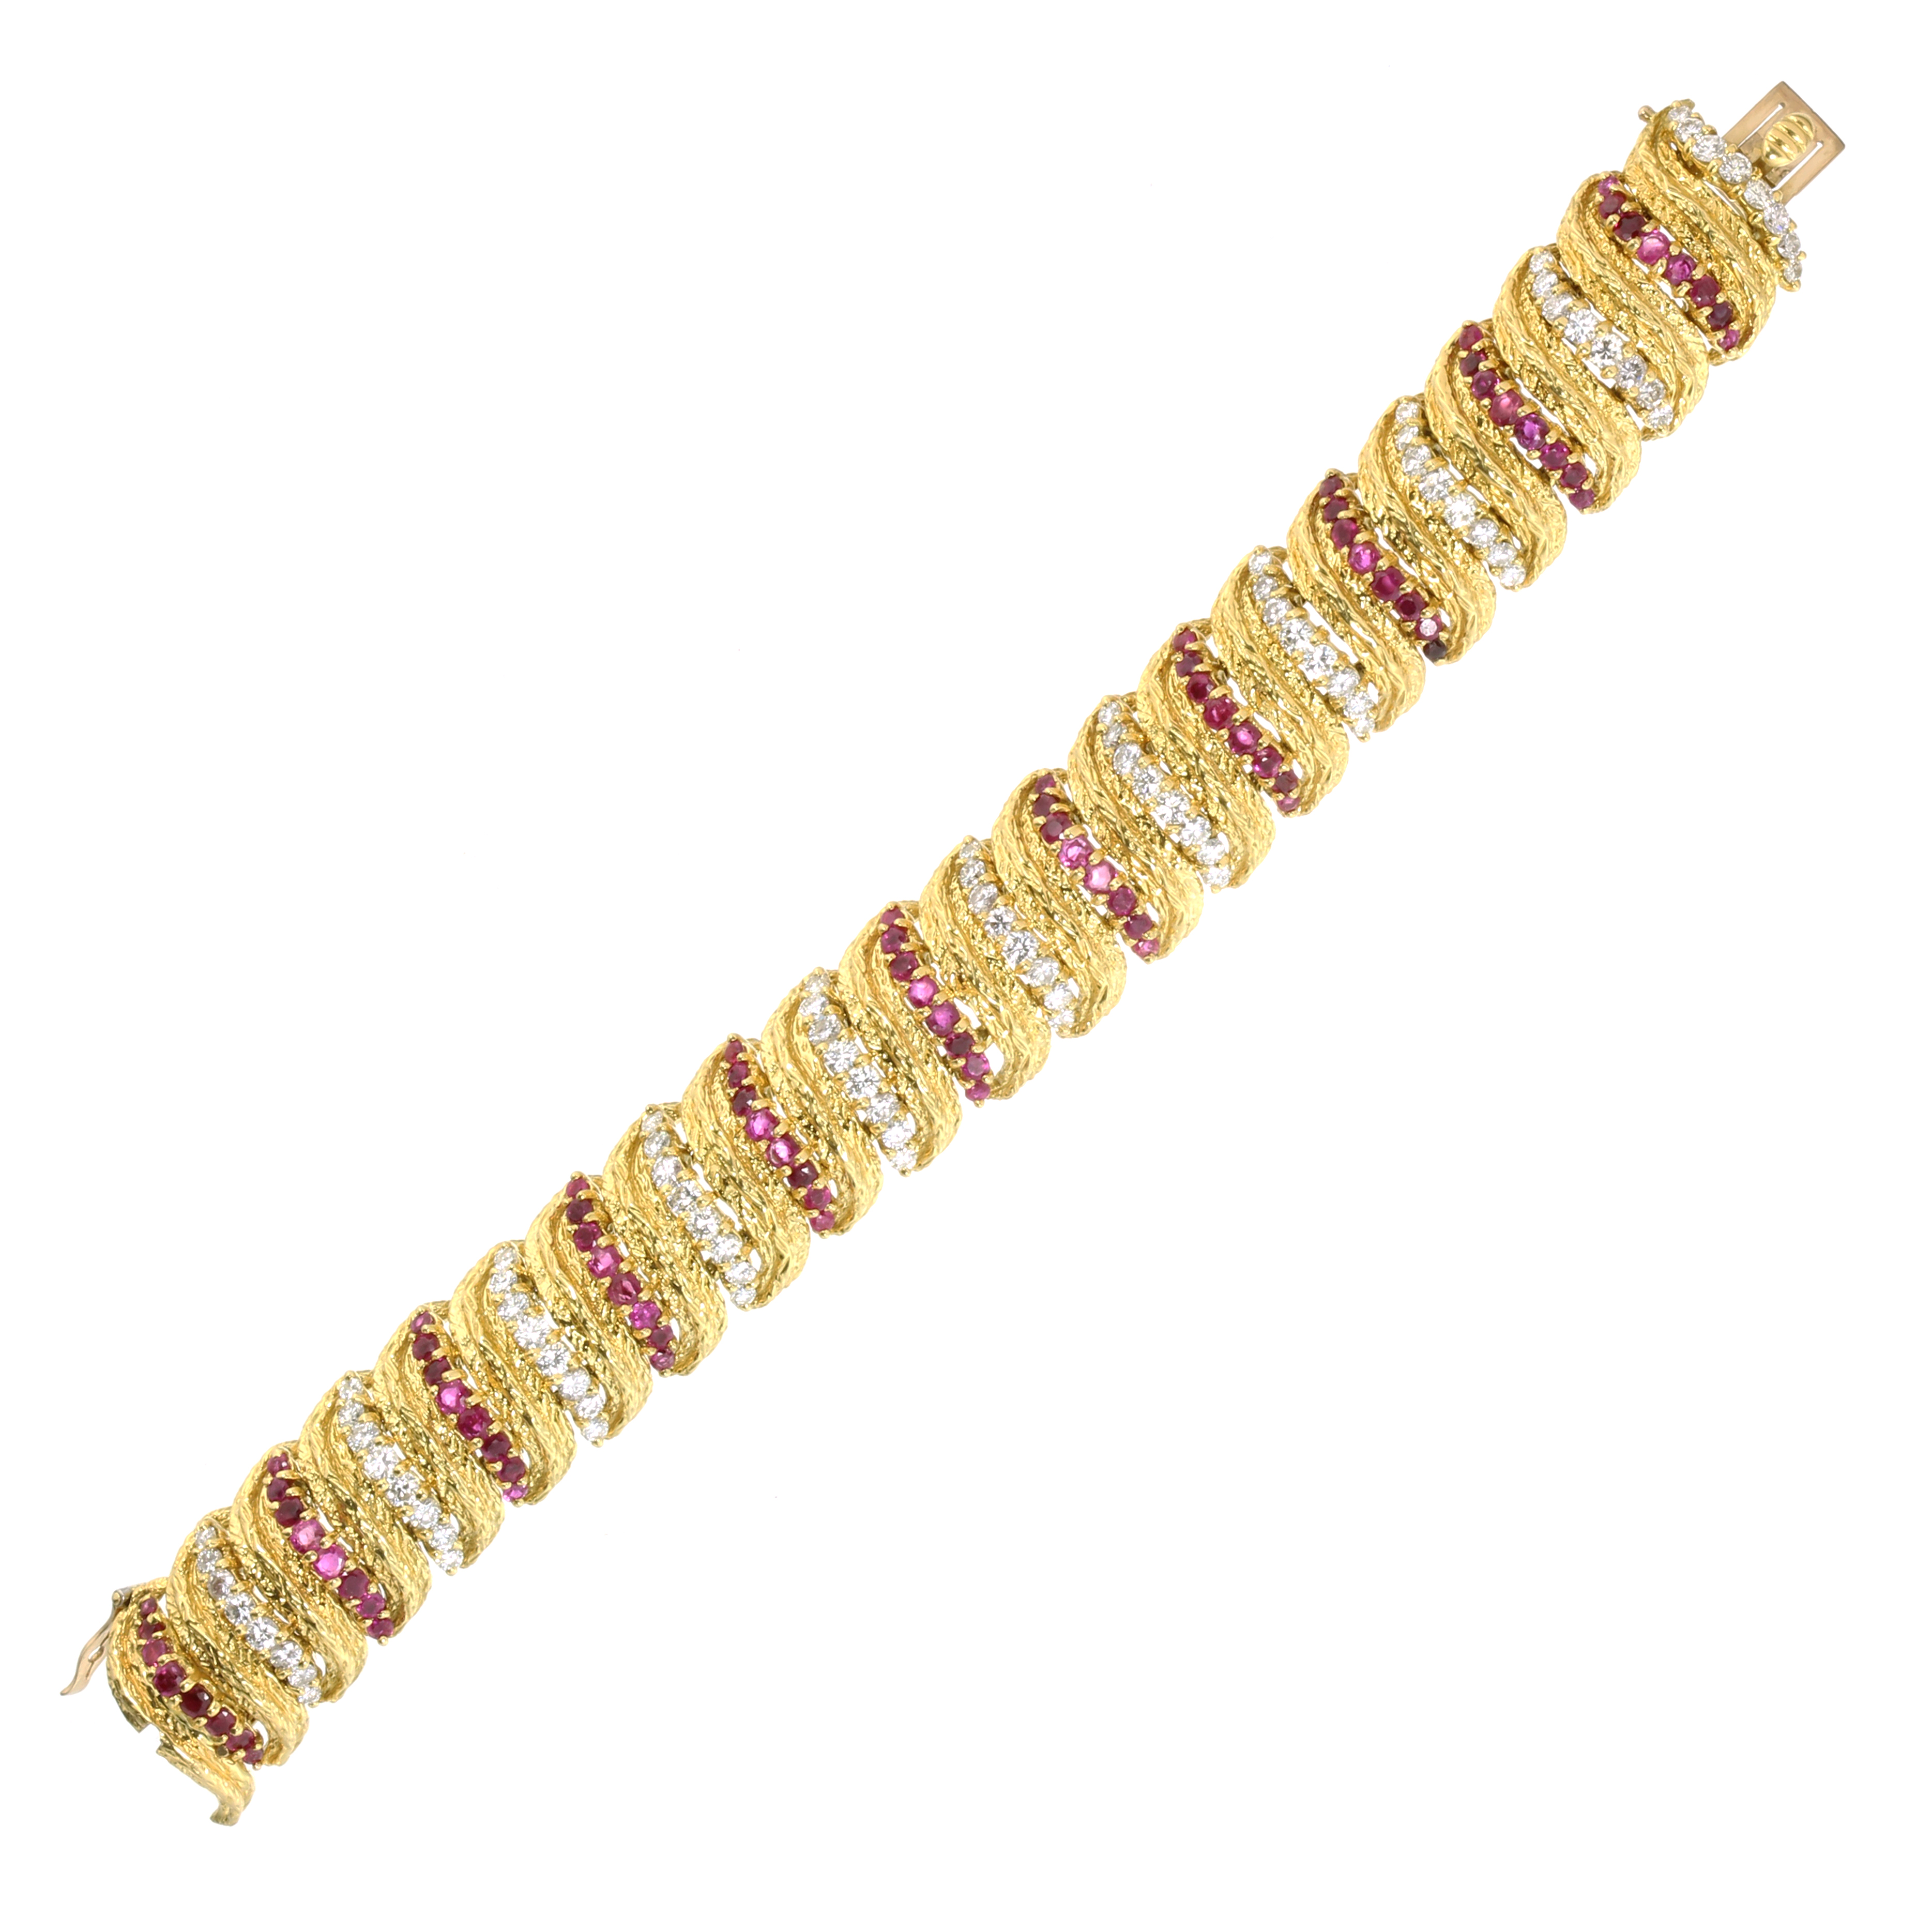 Los 64 - A VINTAGE RUBY AND DIAMOND BRACELET, KUTCHINSKY 1966 in 18ct yellow gold comprising a single row